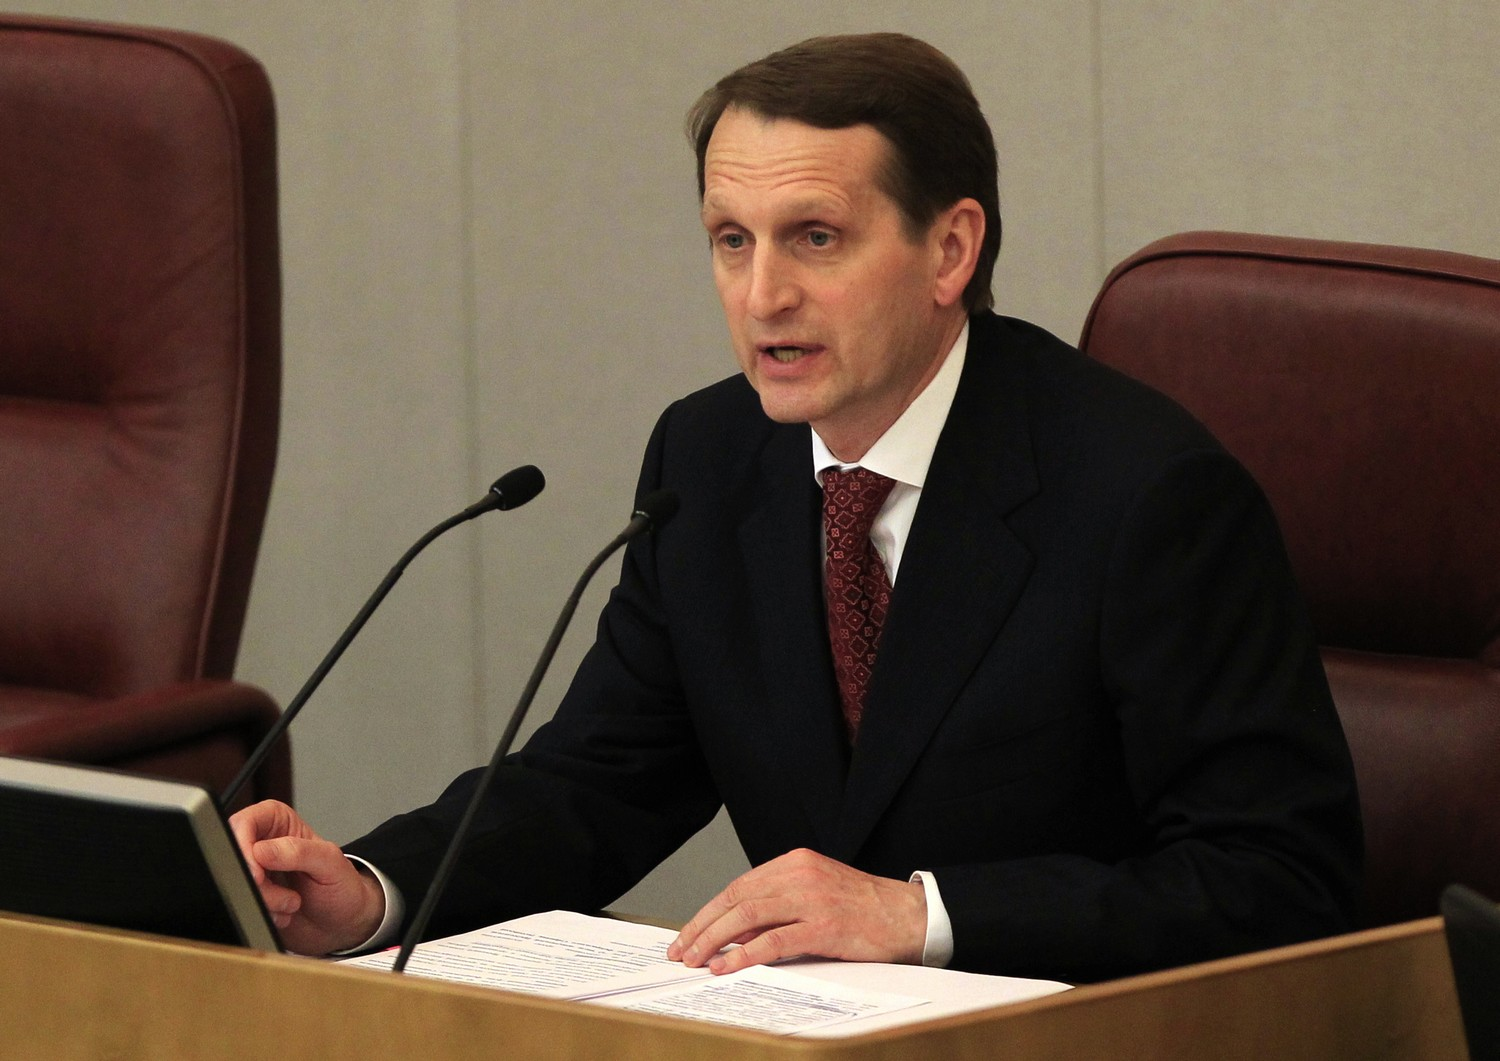 Sergei Naryshkin of United Russia, the newly elected parliament speaker, heads the opening session in Moscow on Wednesday, Dec. 21, 2011. (AP Photo/ Sergey Ponomarev) / SCANPIX Code: 436